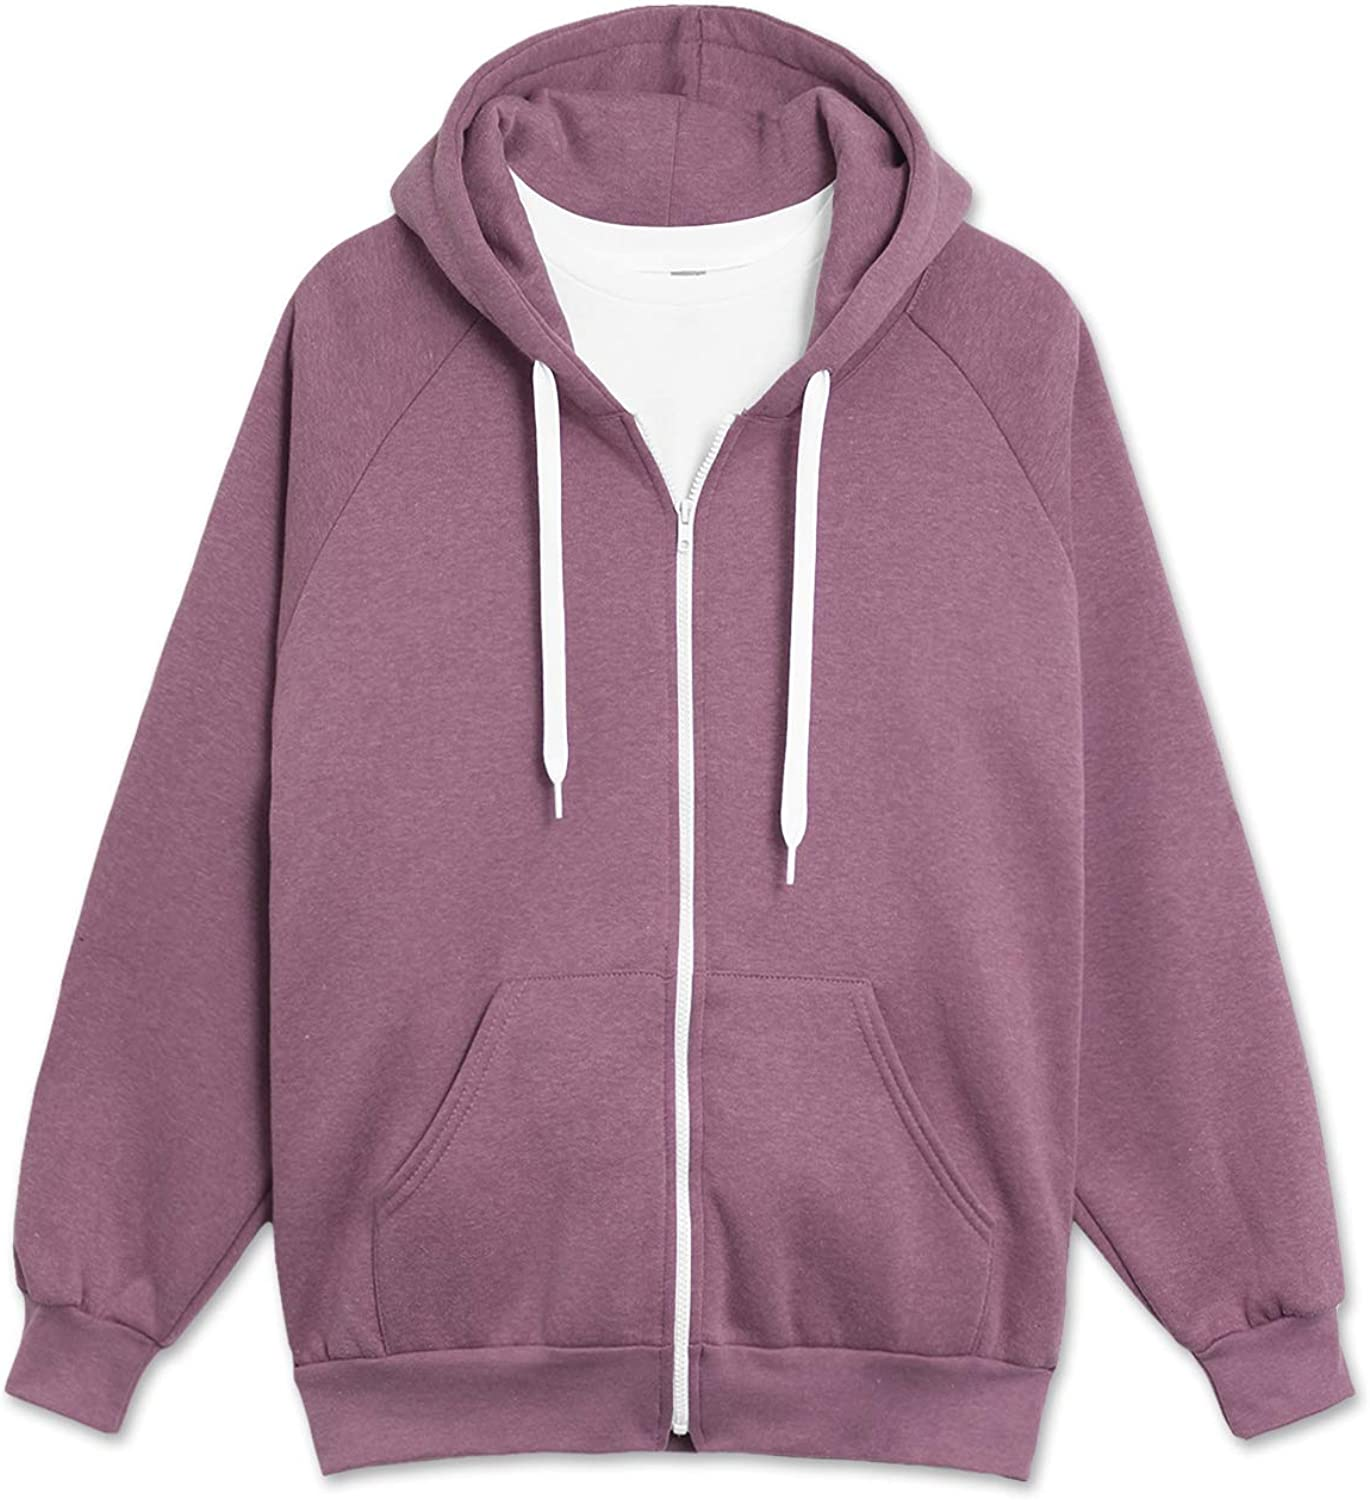 JC A surprise price is realized DISTRO Men's Raglan Hooded Fleece Unisex Zip-up Jacket Hoodie Limited time for free shipping